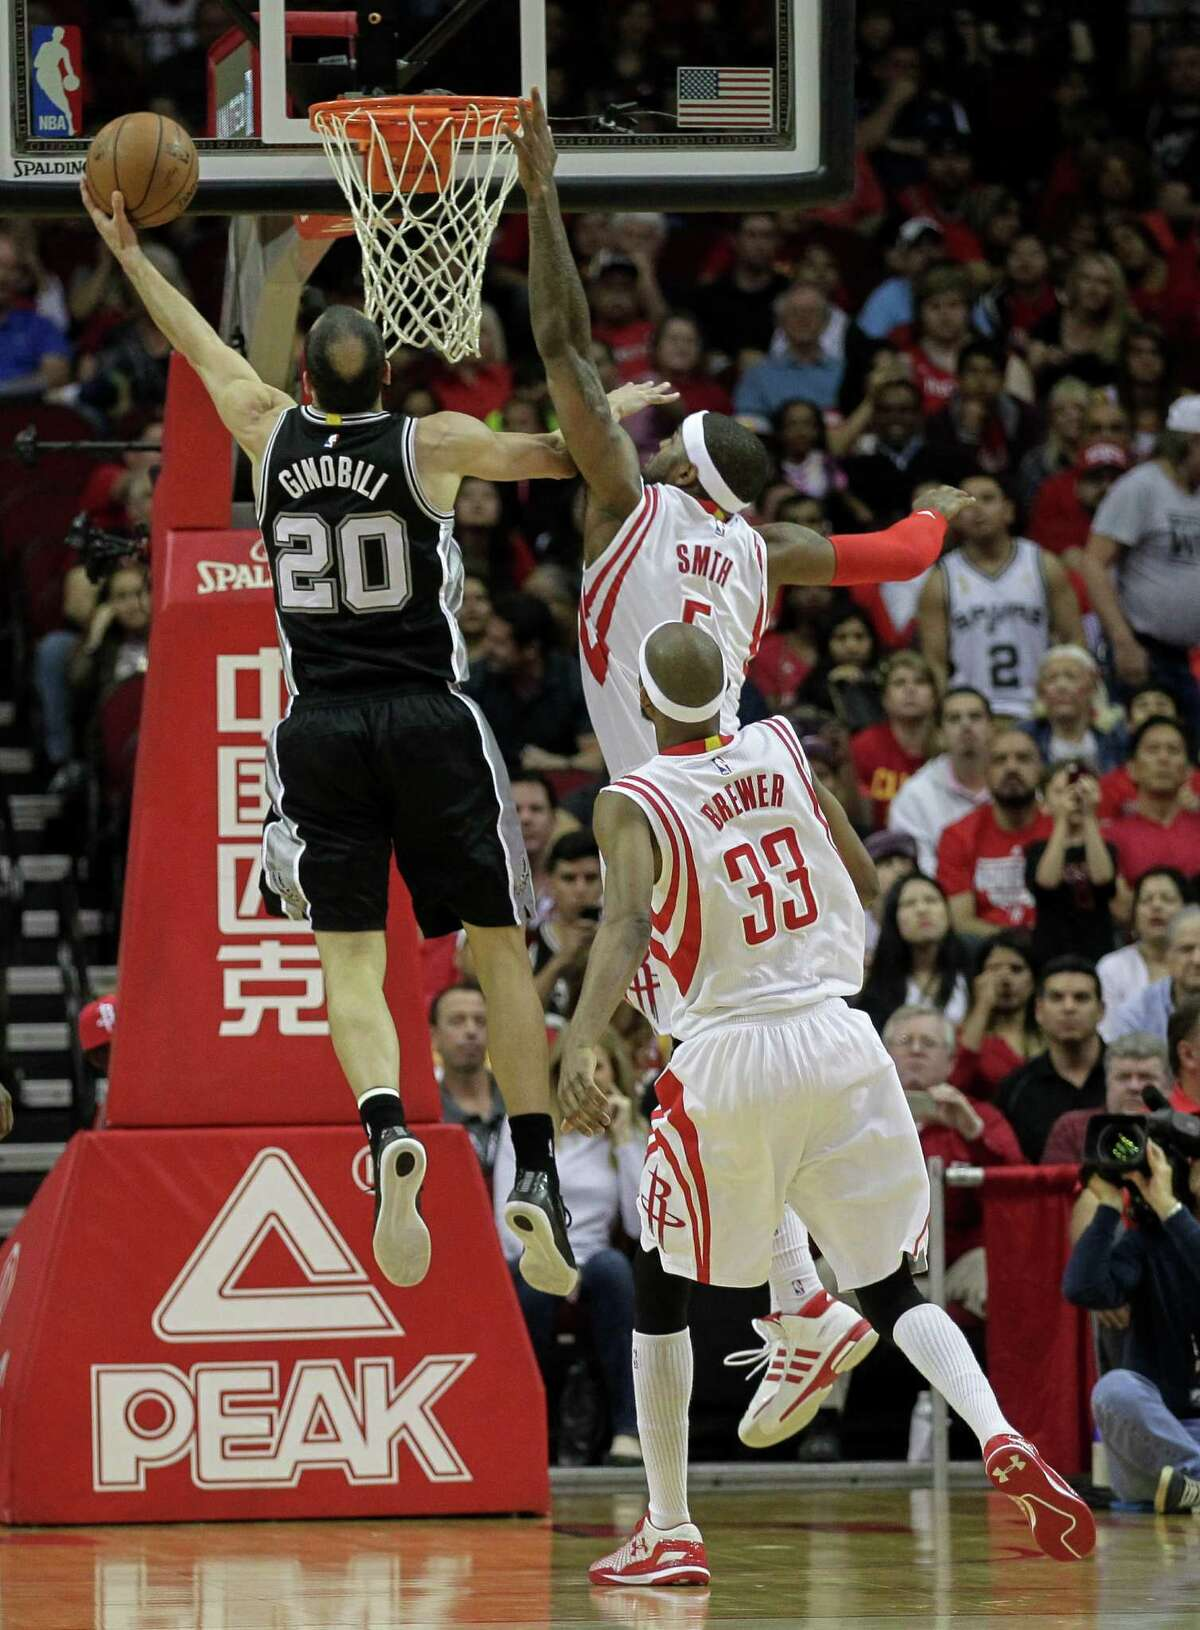 San Antonio Spurs guard Manu Ginobili (20) drives to the basket past Houston Rockets forward Josh Smith (5) and guard Corey Brewer (33) during the first half of an NBA basketball game Friday, April 10, 2015, in Houston.